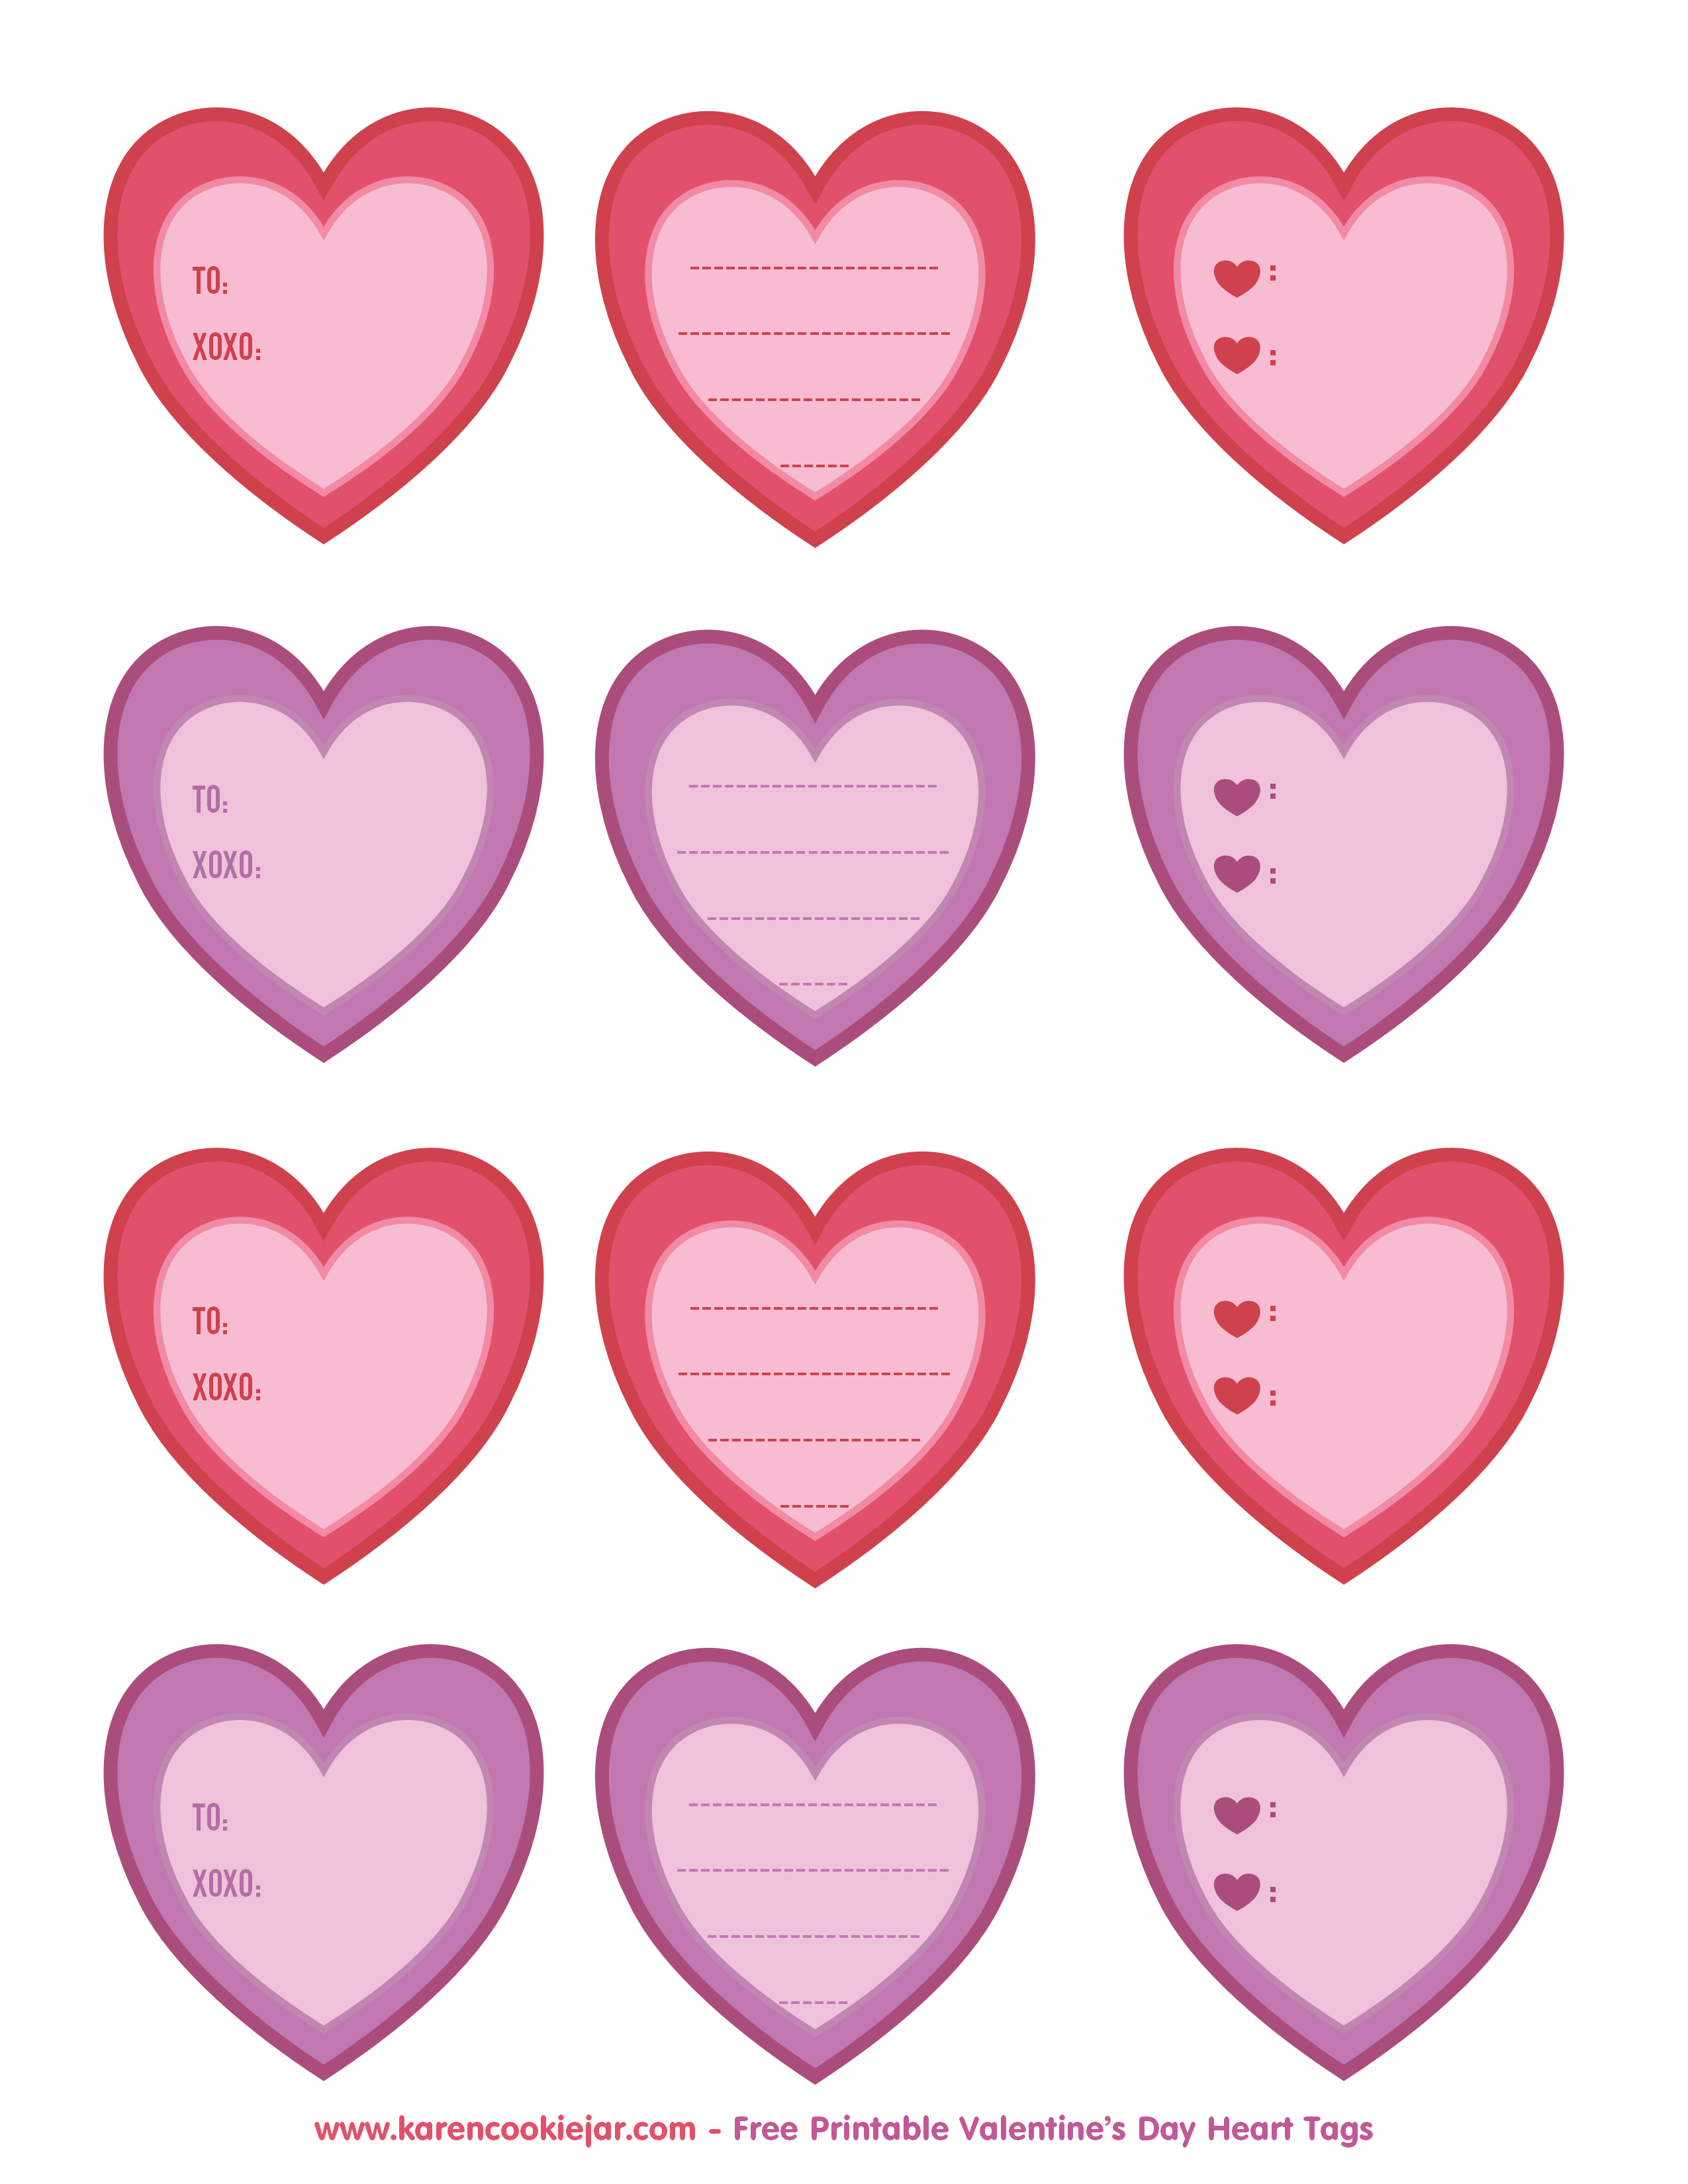 black and white Accents clipart dtp. Heart tags as vi